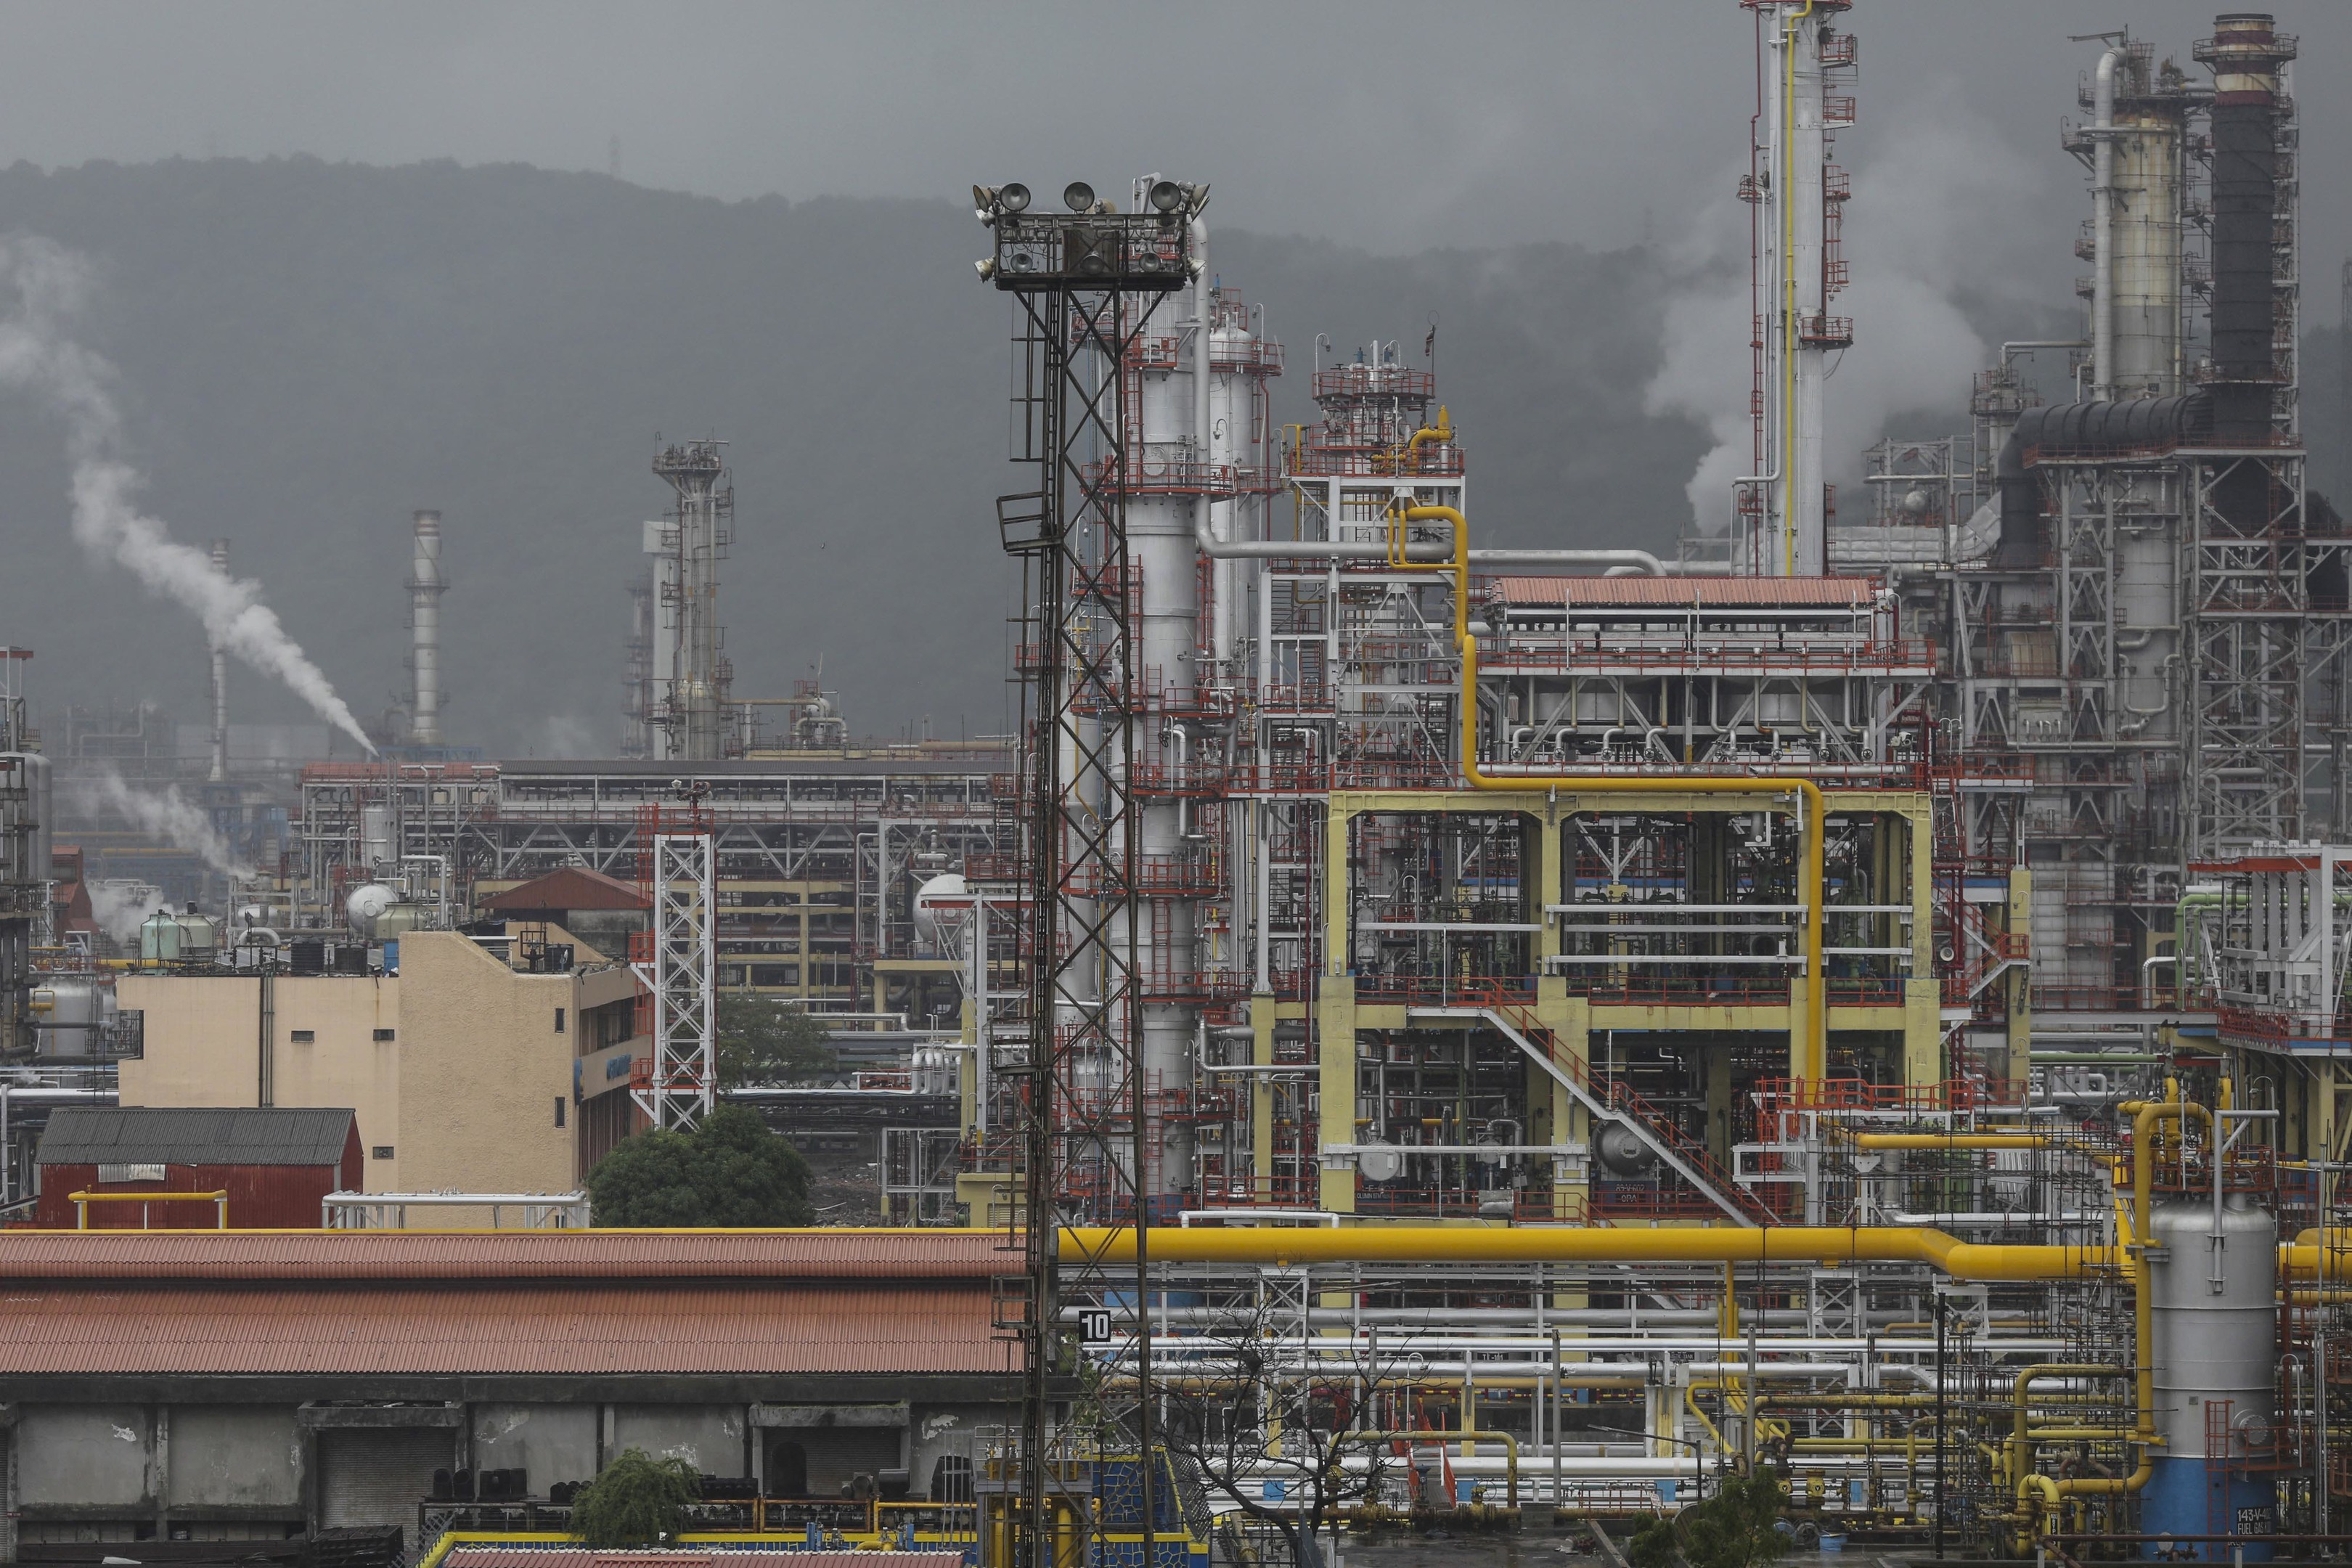 The Bharat Petroleum Corp. refinery stands in the Mahul area of Mumbai, India, on Thursday, June 28, 2018. The Indian rupee slumped to an all-time low as a resurgence in crude prices and the emerging-market selloff took a toll on the currency of the world's third-biggest oil consumer. Photographer: Dhiraj Singh/Bloomberg